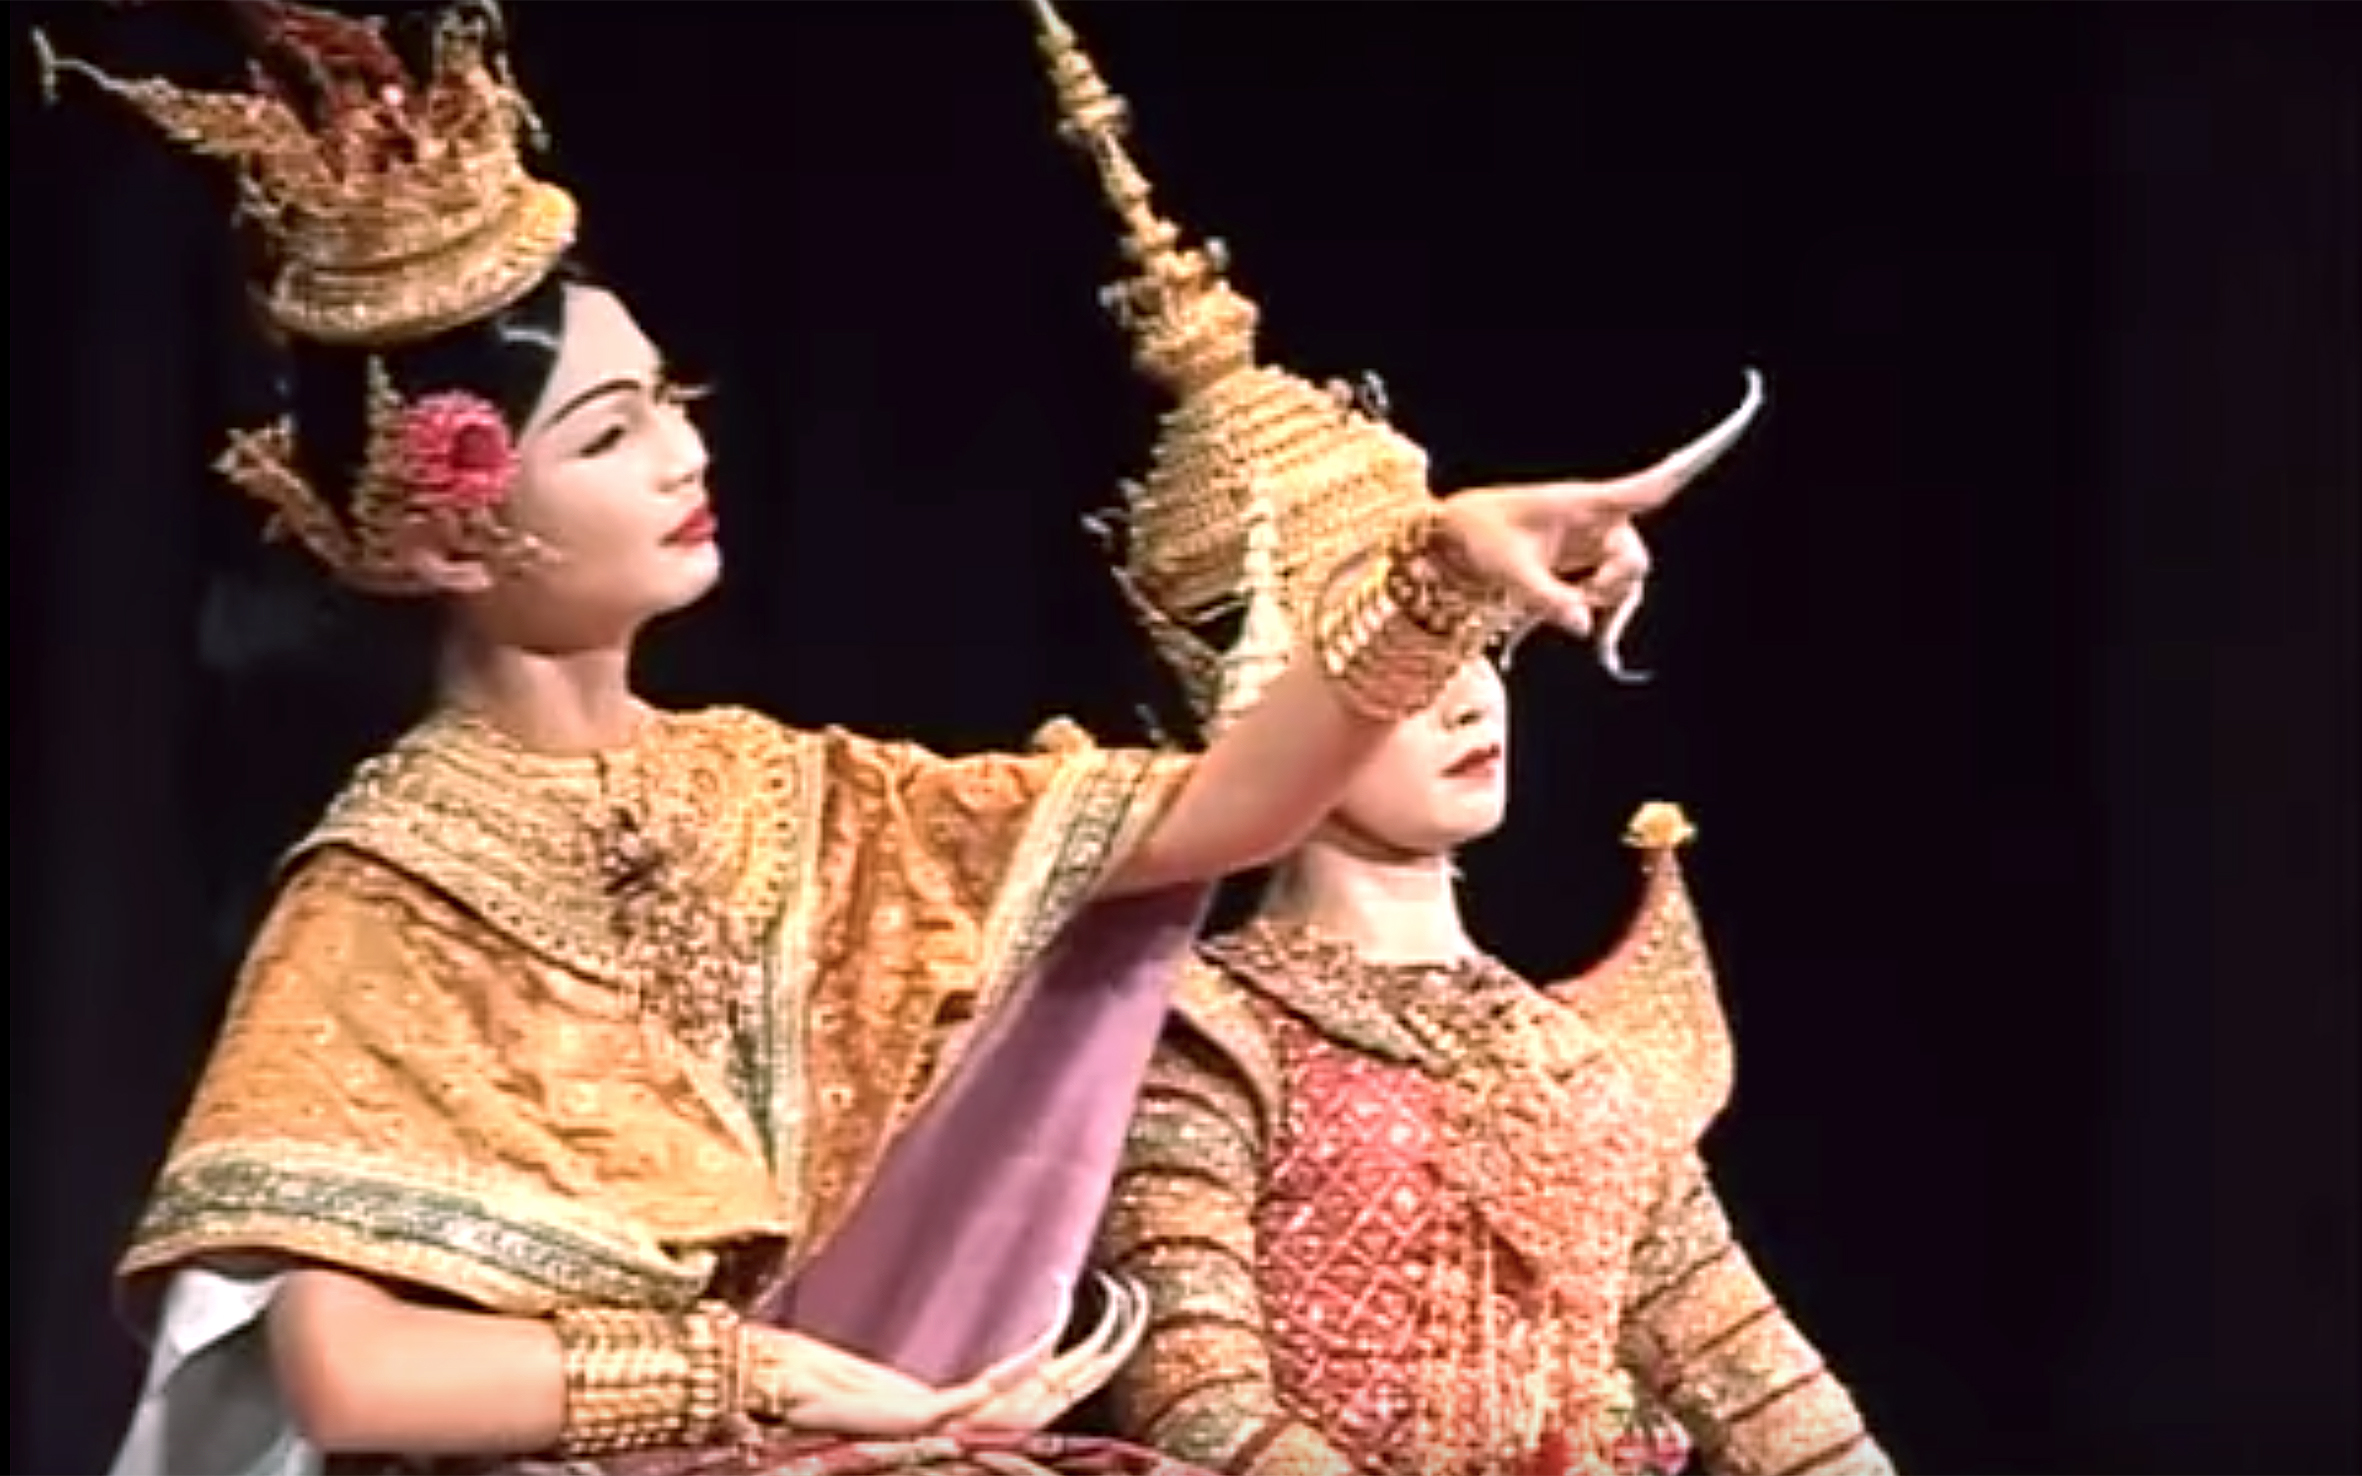 524.Lakhon / Thailand - Lakhon is a theatre in Thailand, that is composed of many different genres. There are three main categories: classical, folk, and modern. Many forms of theatre in Cambodia incorporates dance movement into performances and are referred to as dance dramas. Cambodian theatre was strongly influenced by the Siamese theatrical arts during the early 19 century. Lakhon features a wider range of stories than Khon, including folk tales and Jataka stories. Dancers are usually female and perform as a group rather than representing individual characters.